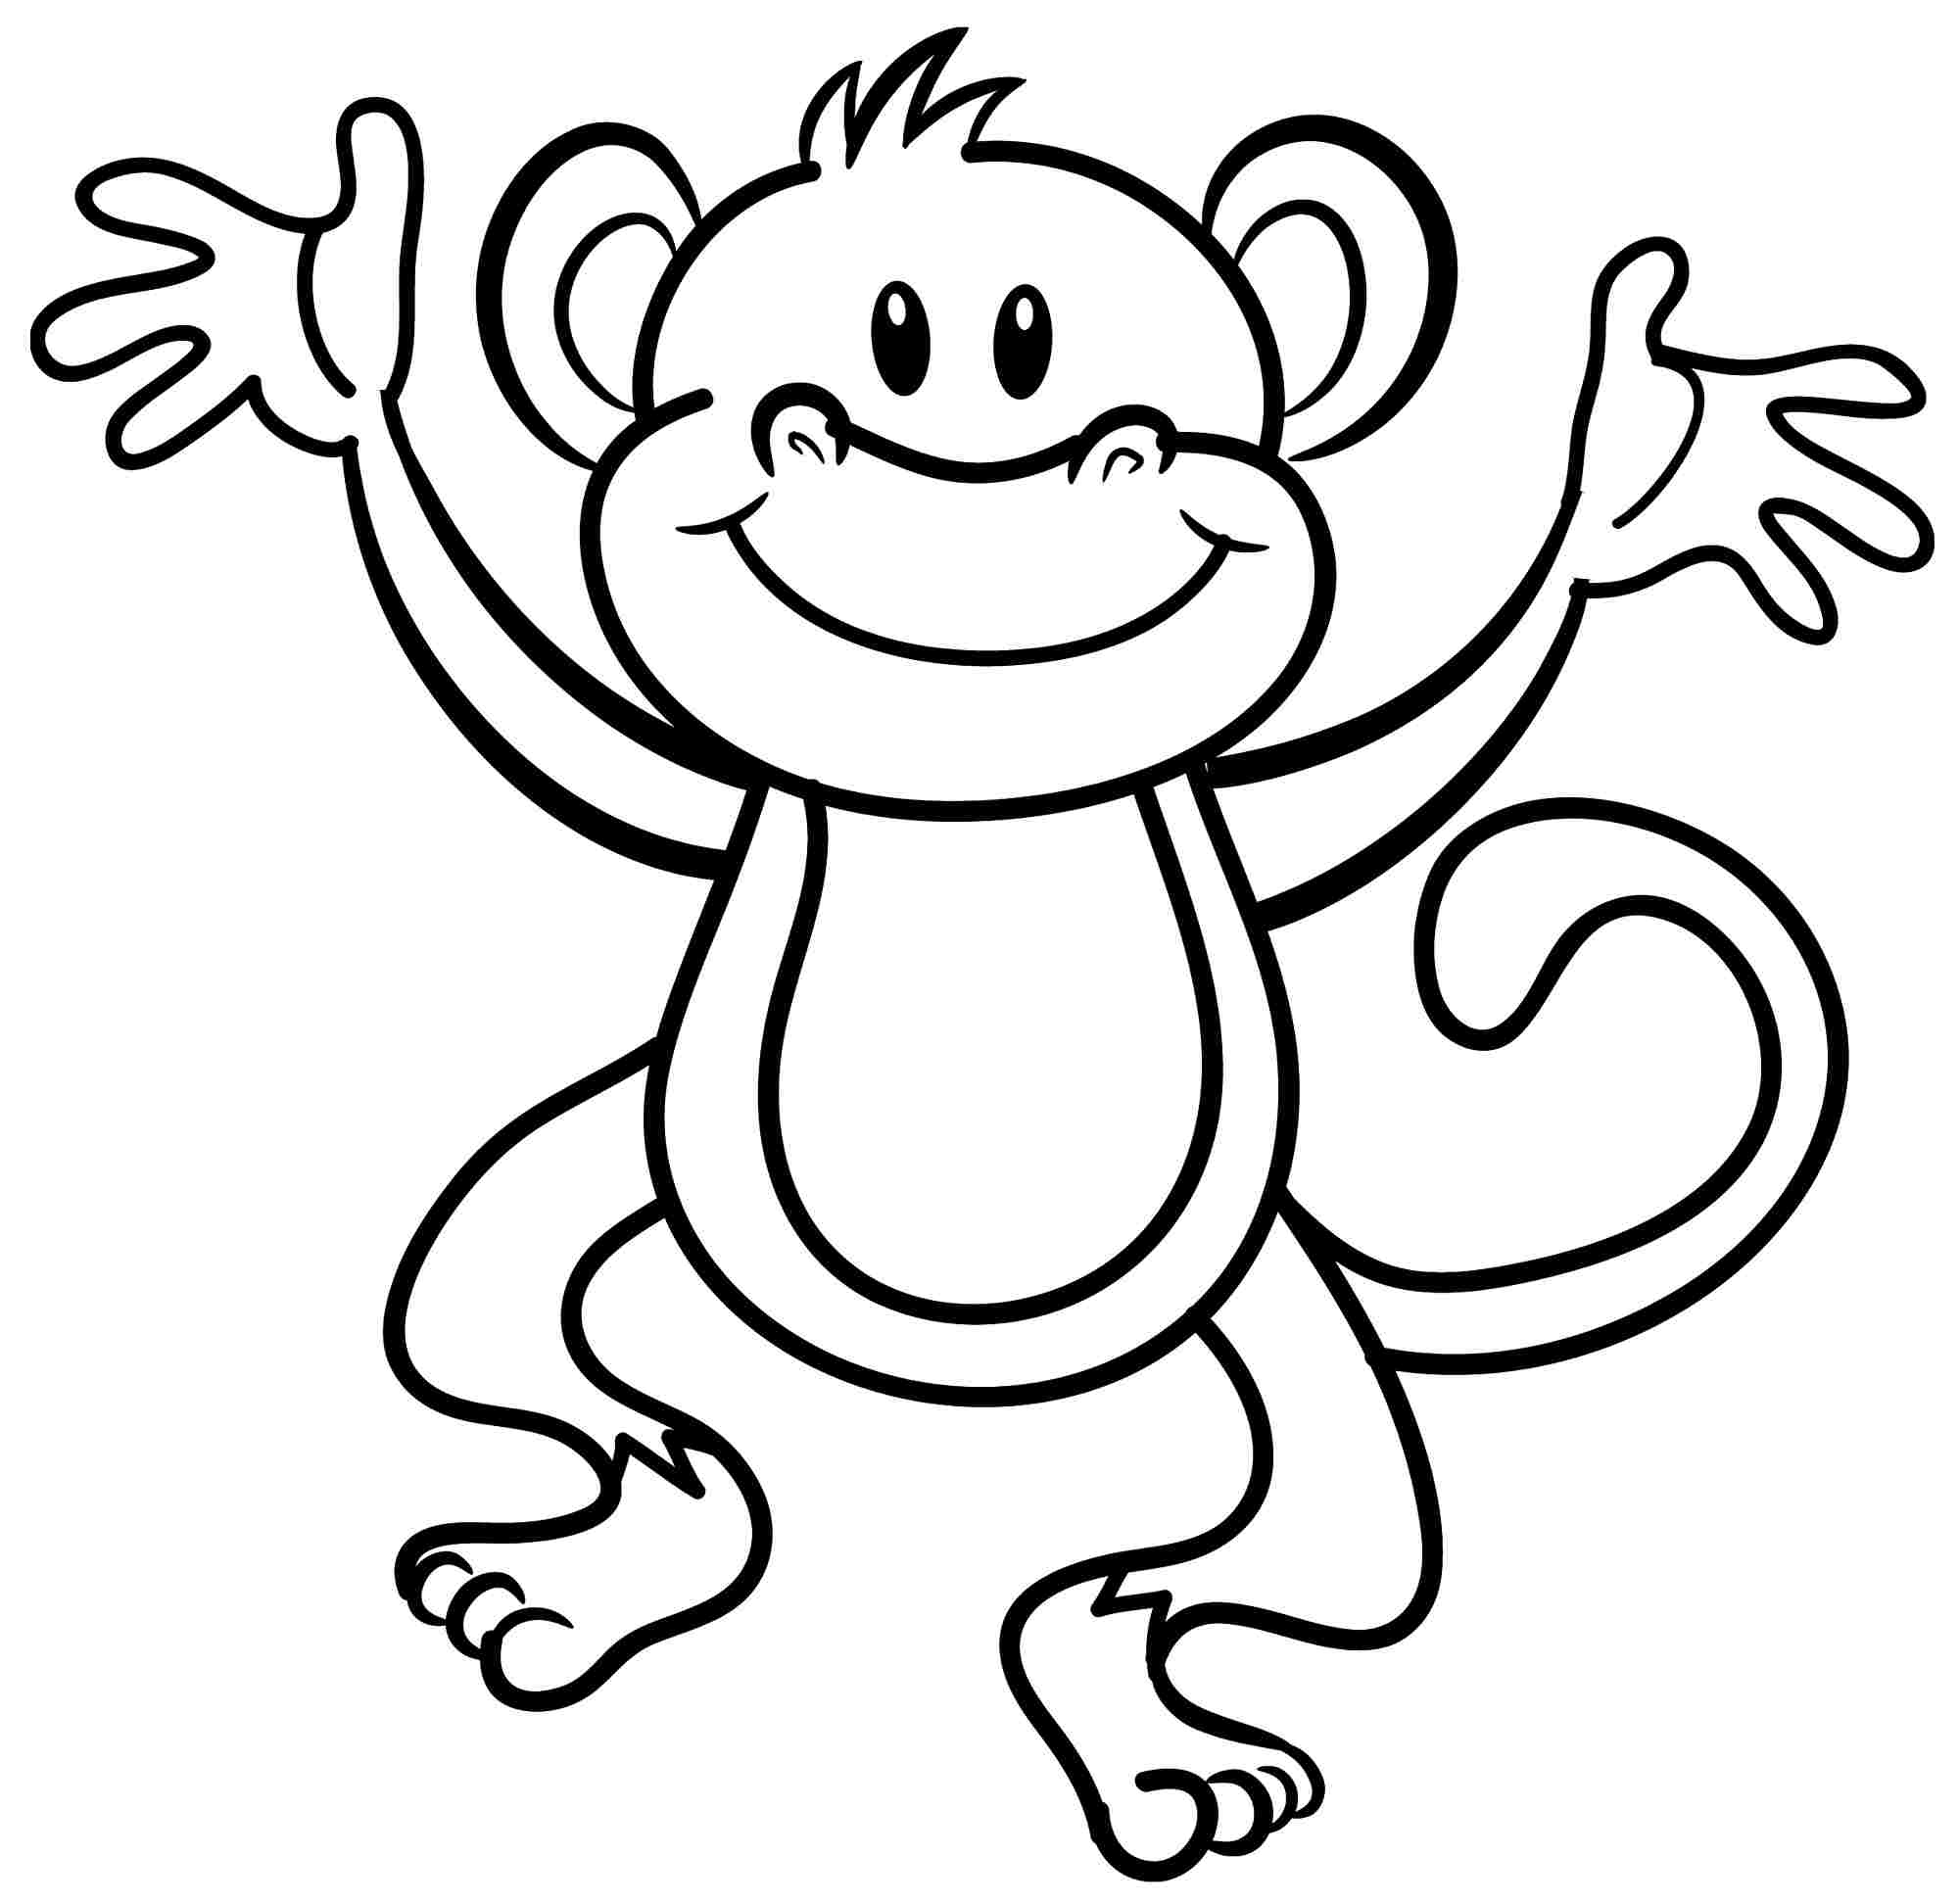 monkey pictures for coloring easy monkey coloring pages tripafethna coloring for pictures monkey